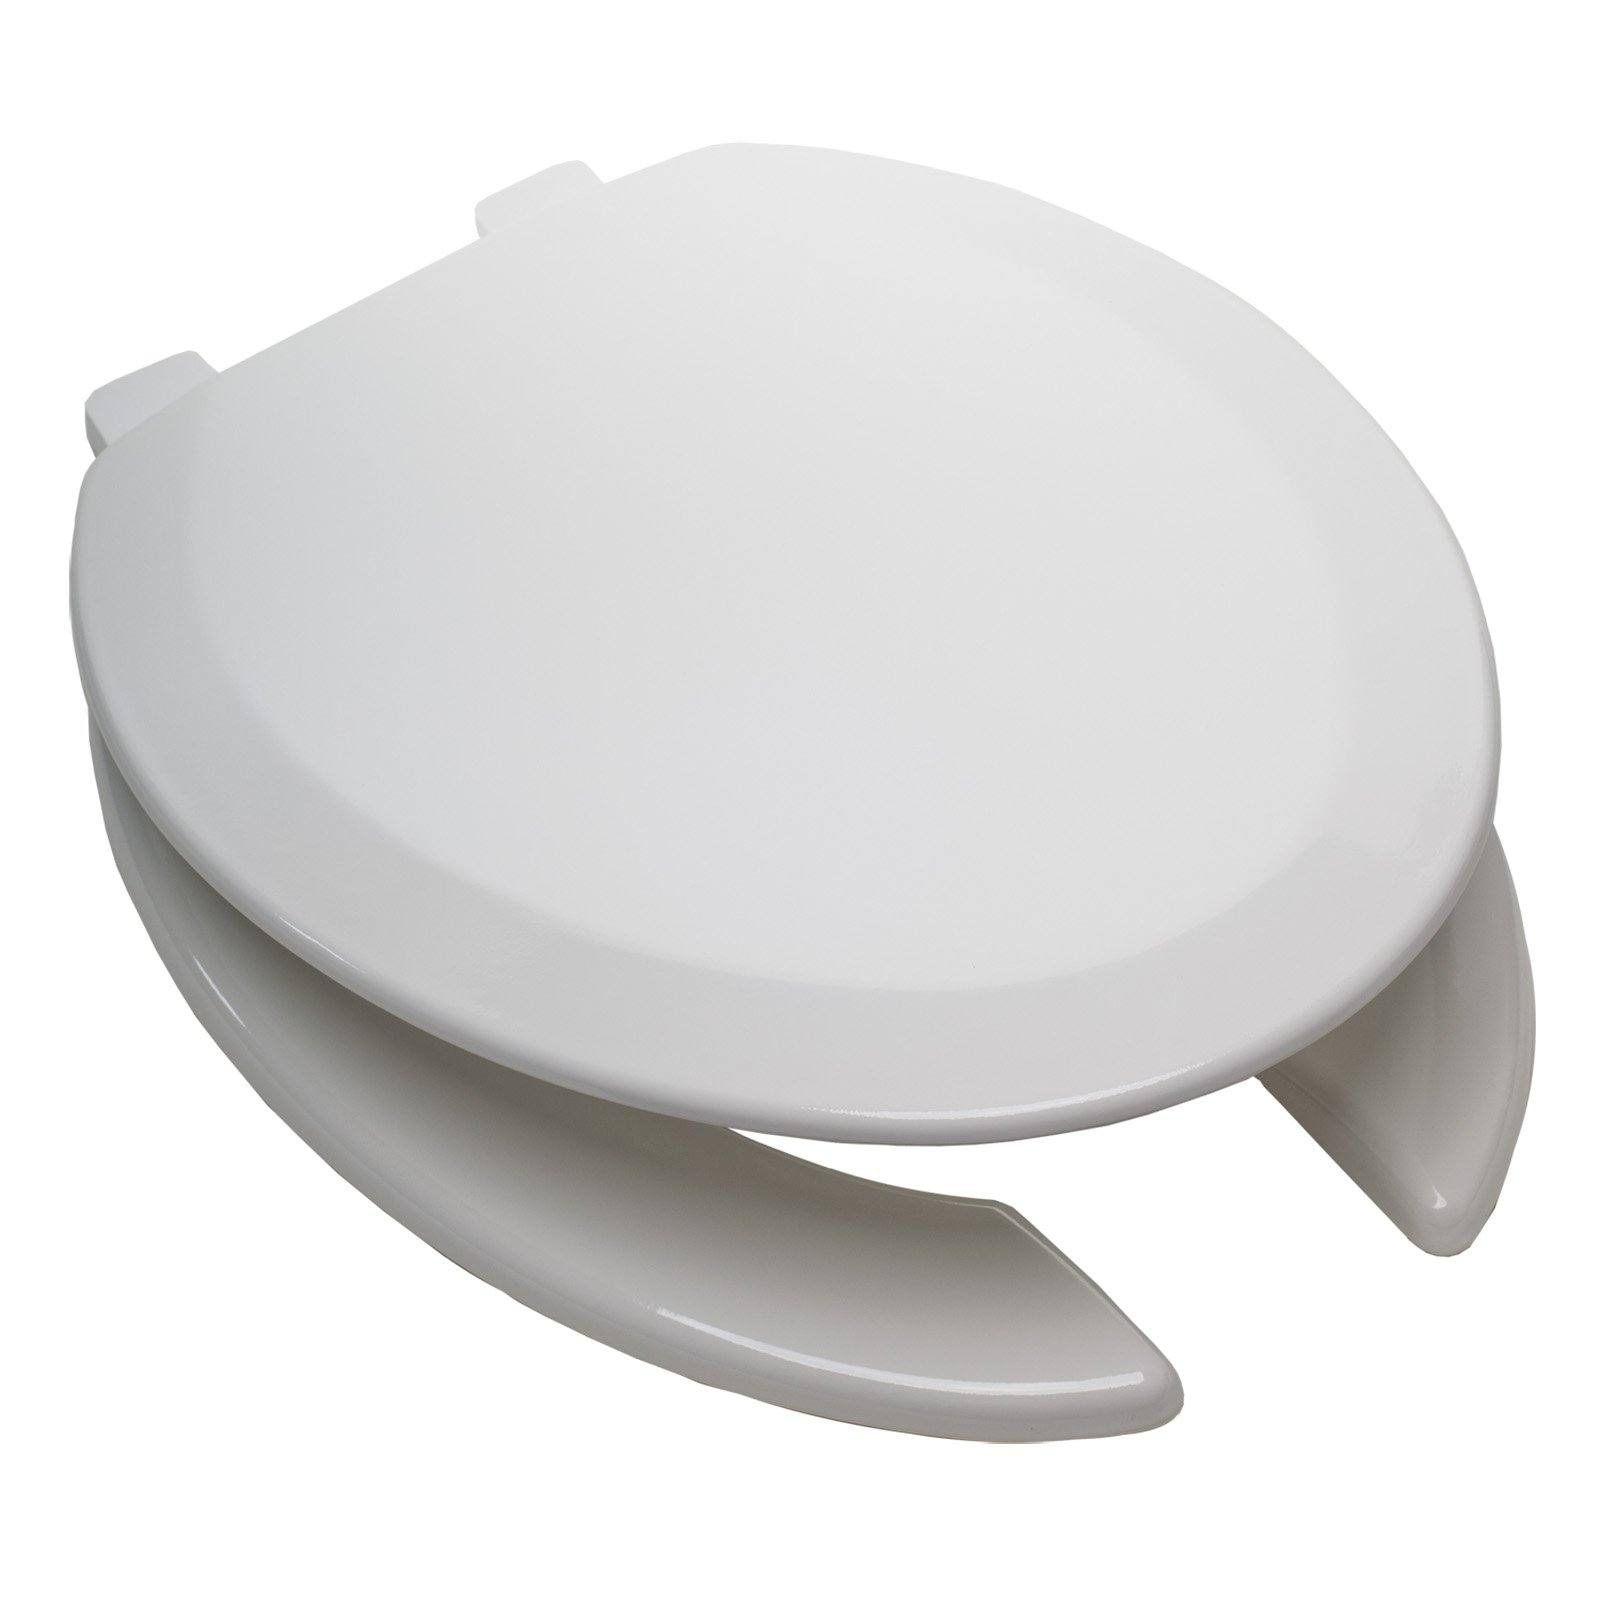 Tremendous Deluxe Molded Wood Toilet Seat White Elongated Open Front With Cover Pabps2019 Chair Design Images Pabps2019Com